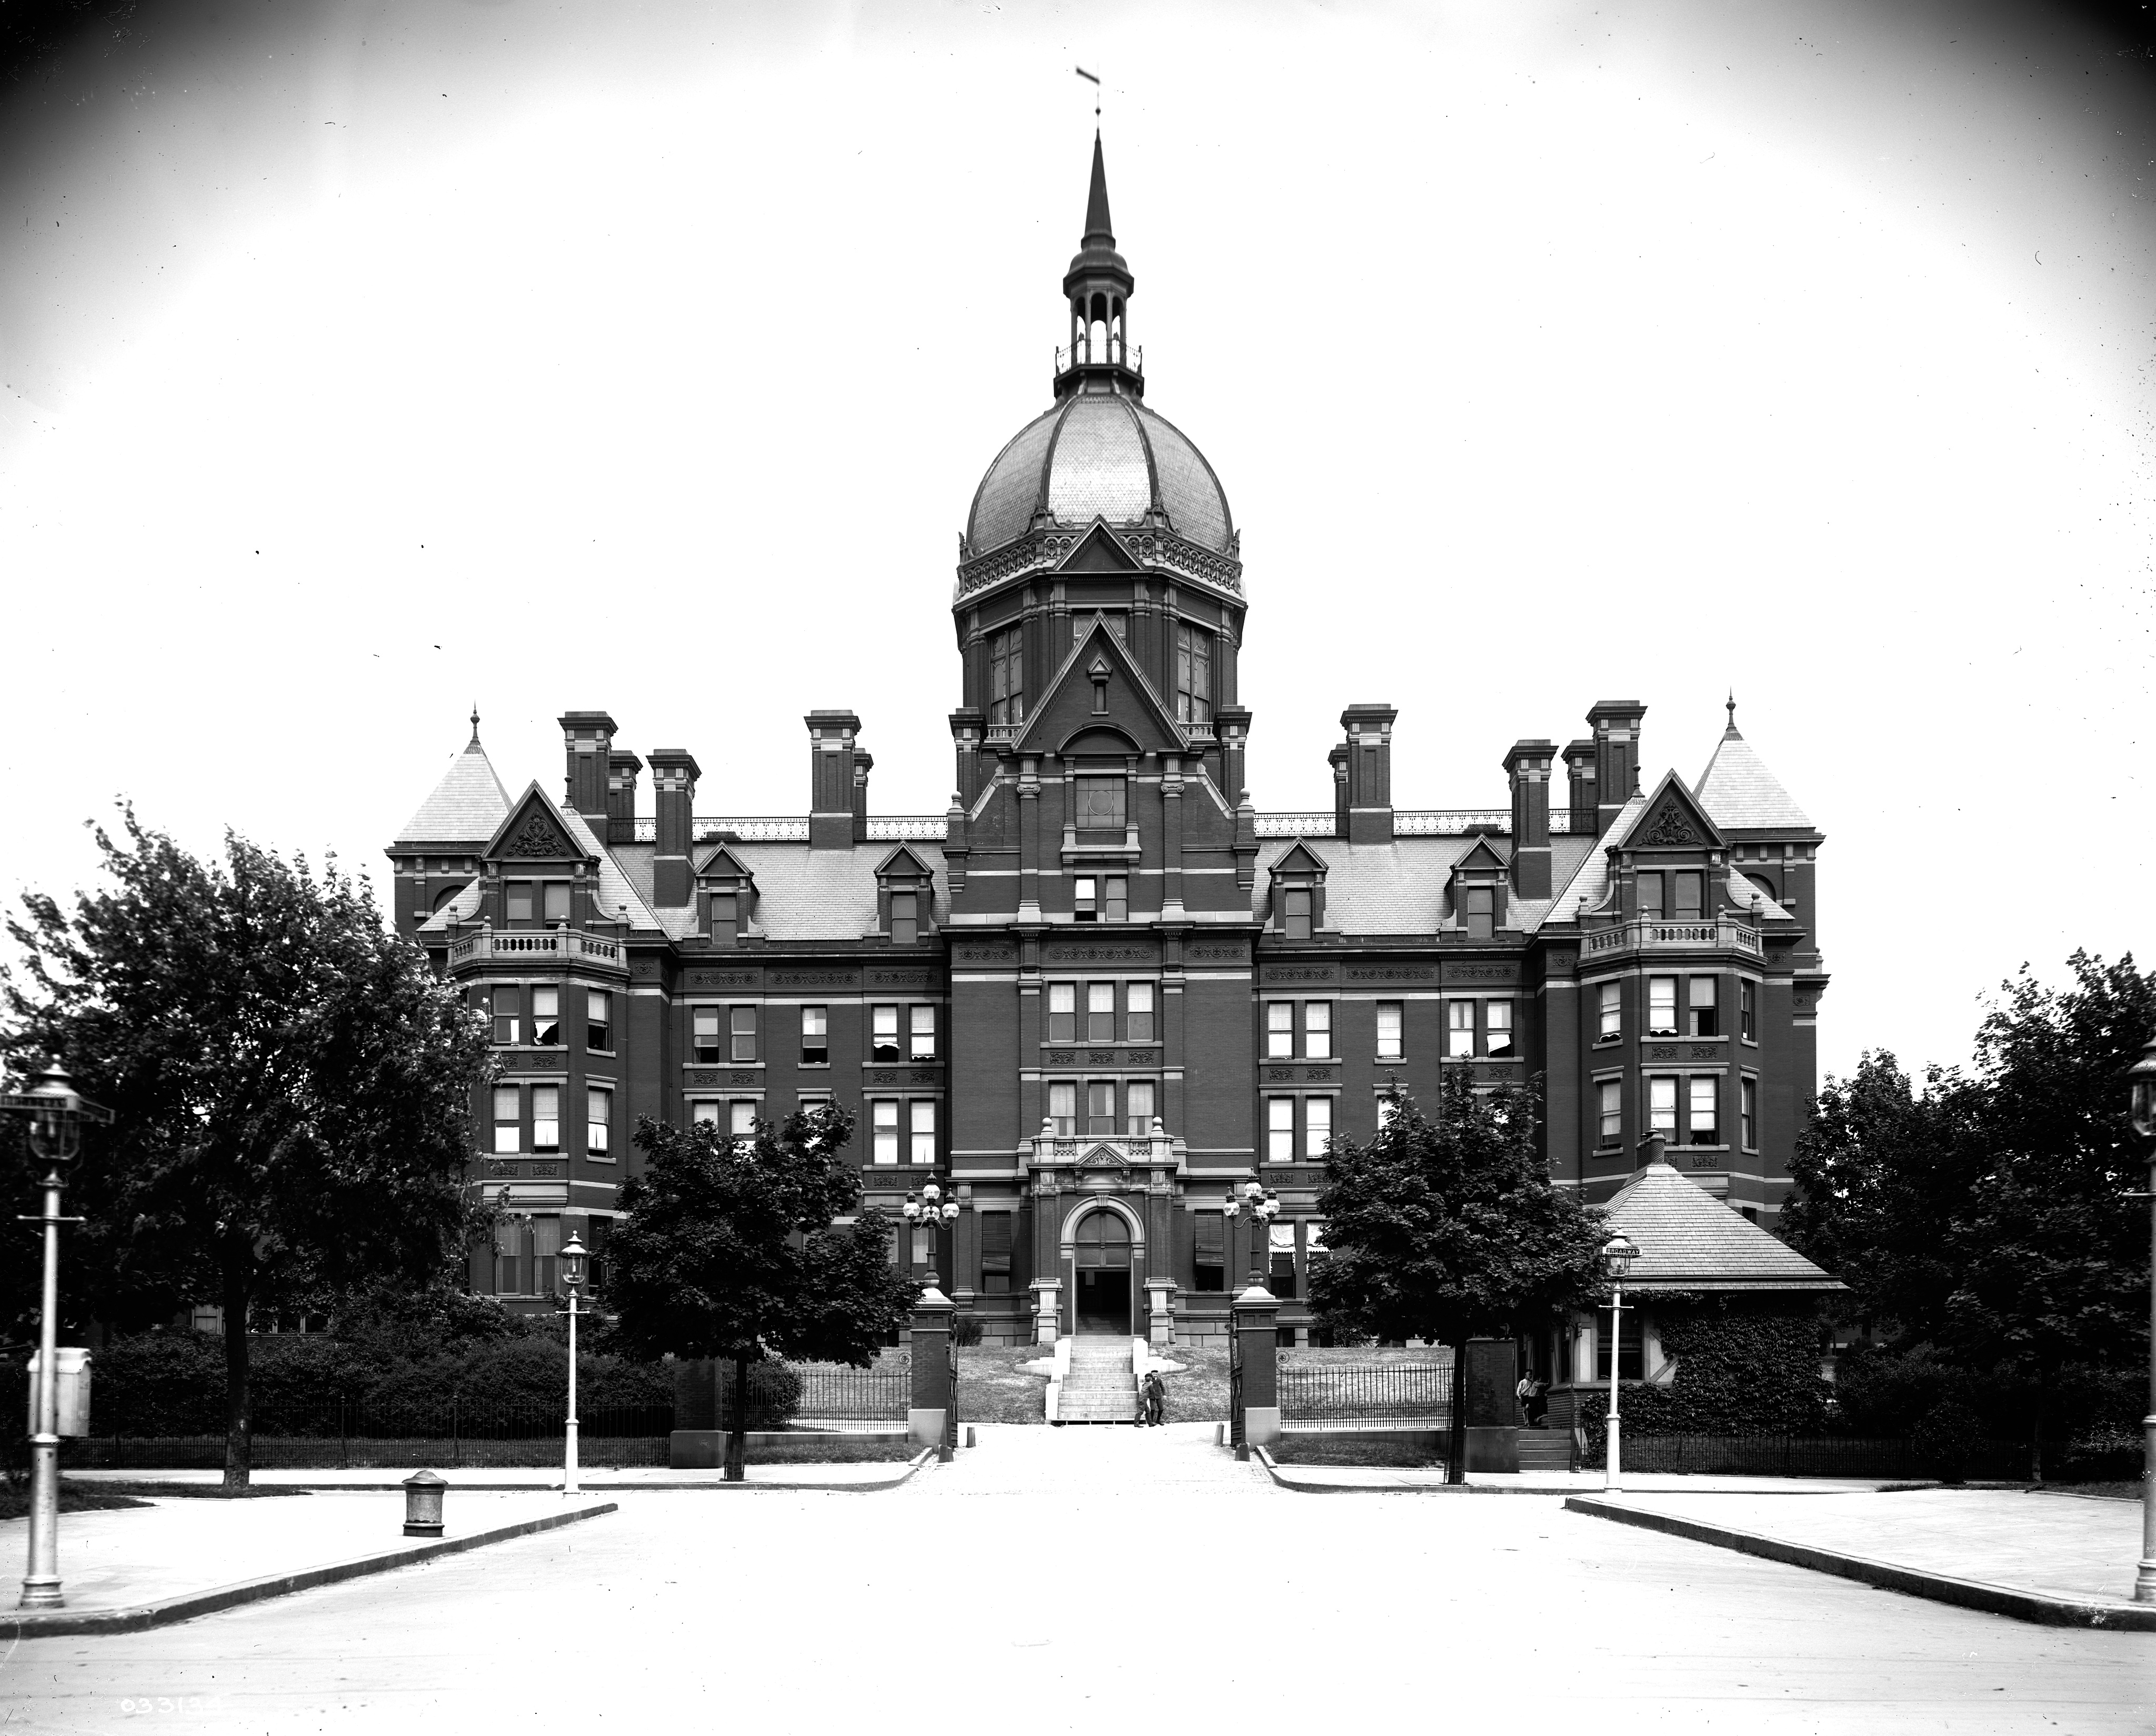 Johns Hopkins Hospital Archives - Ghosts of Baltimore